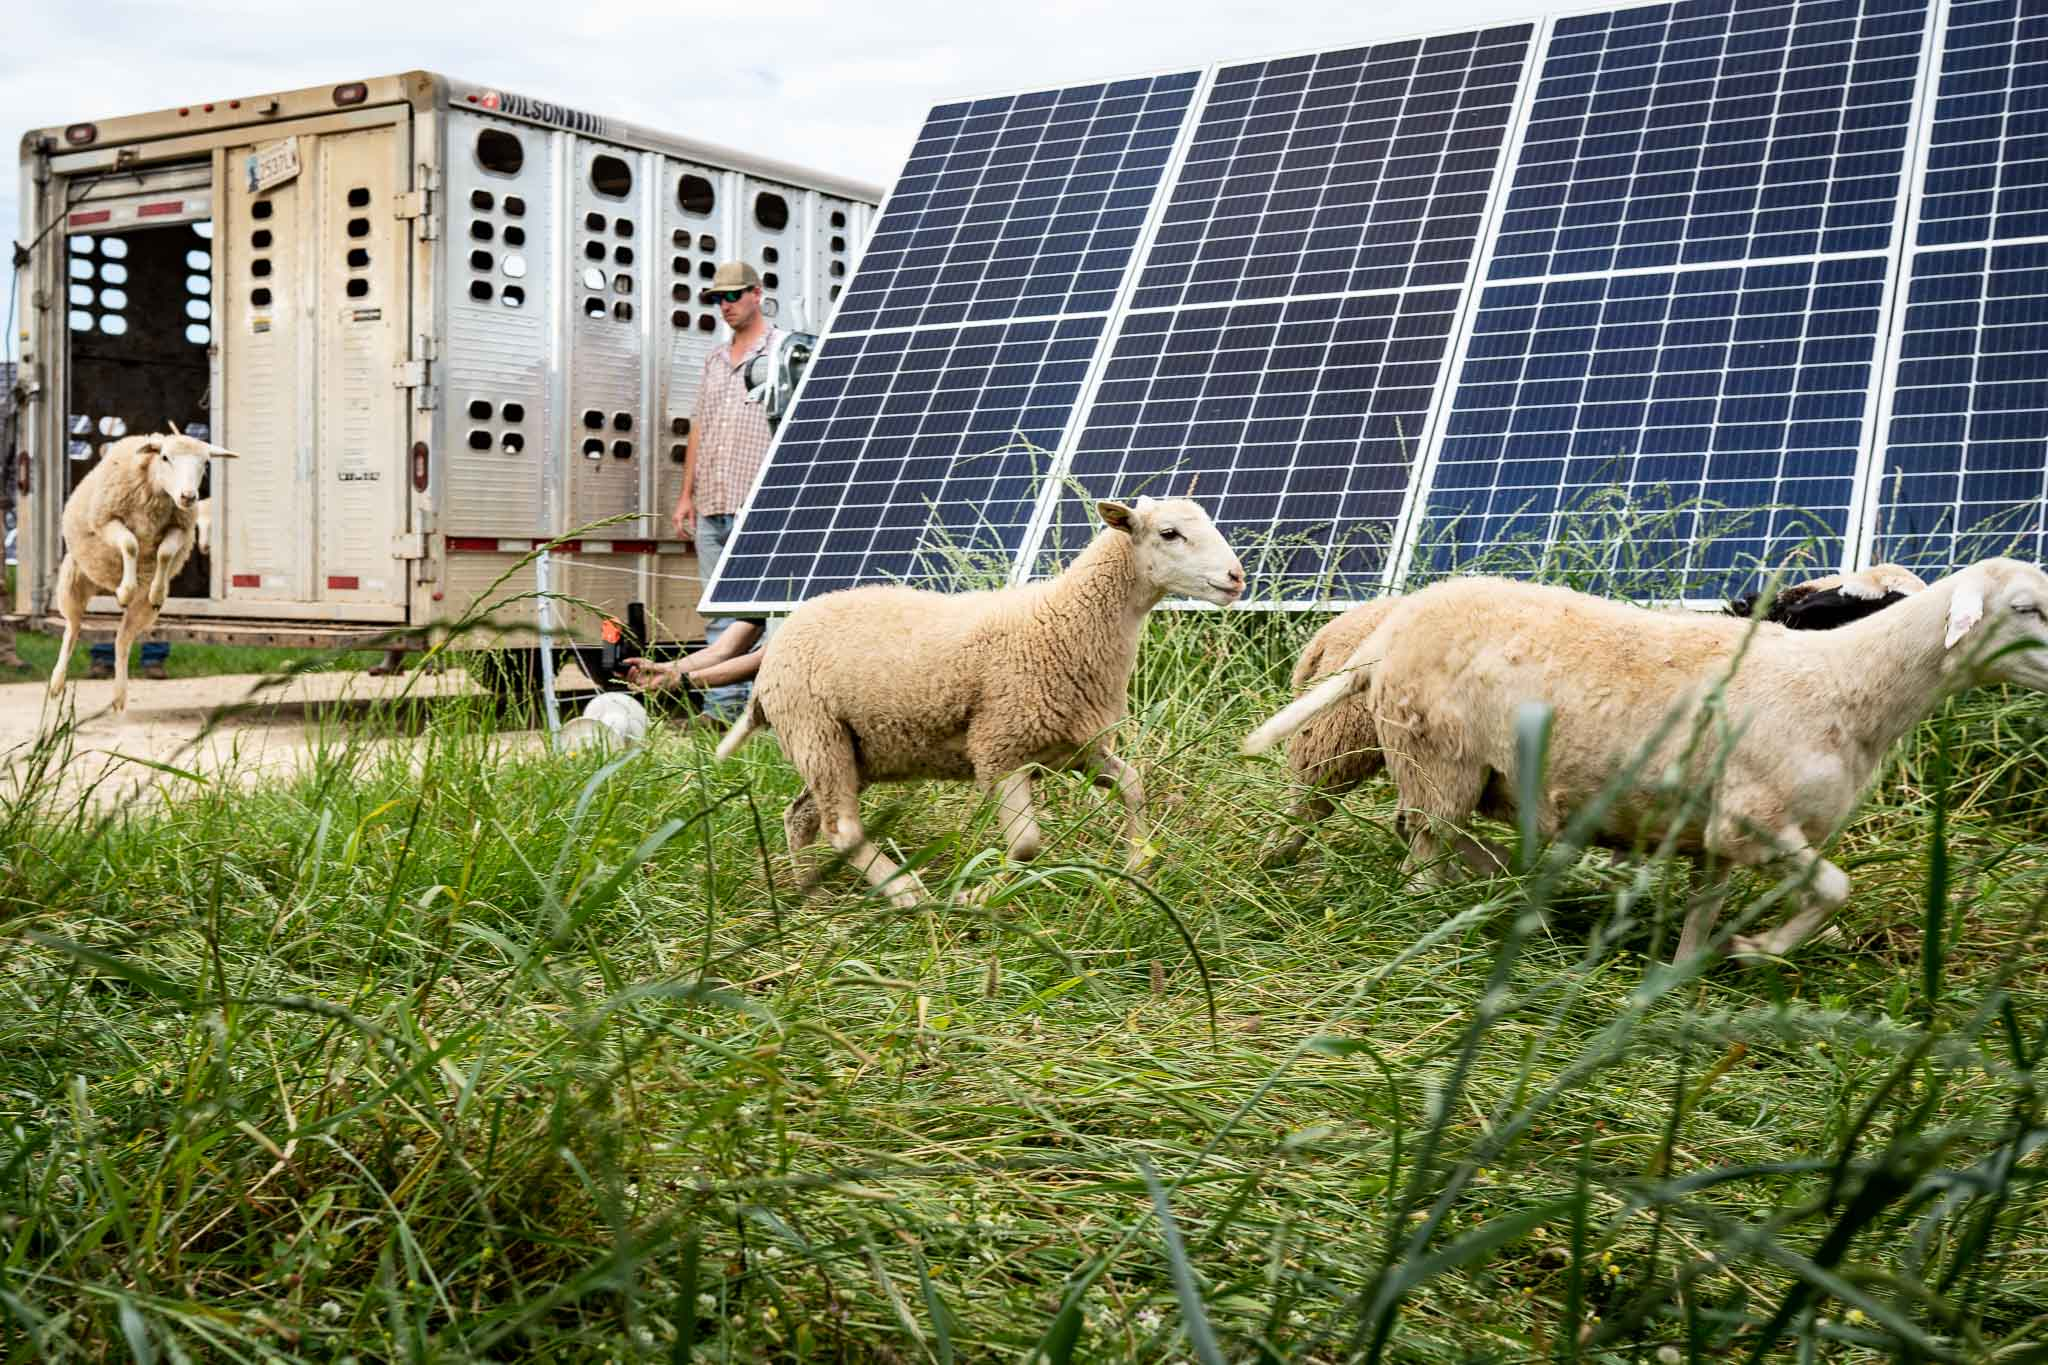 sheep running on regenerative energy farm